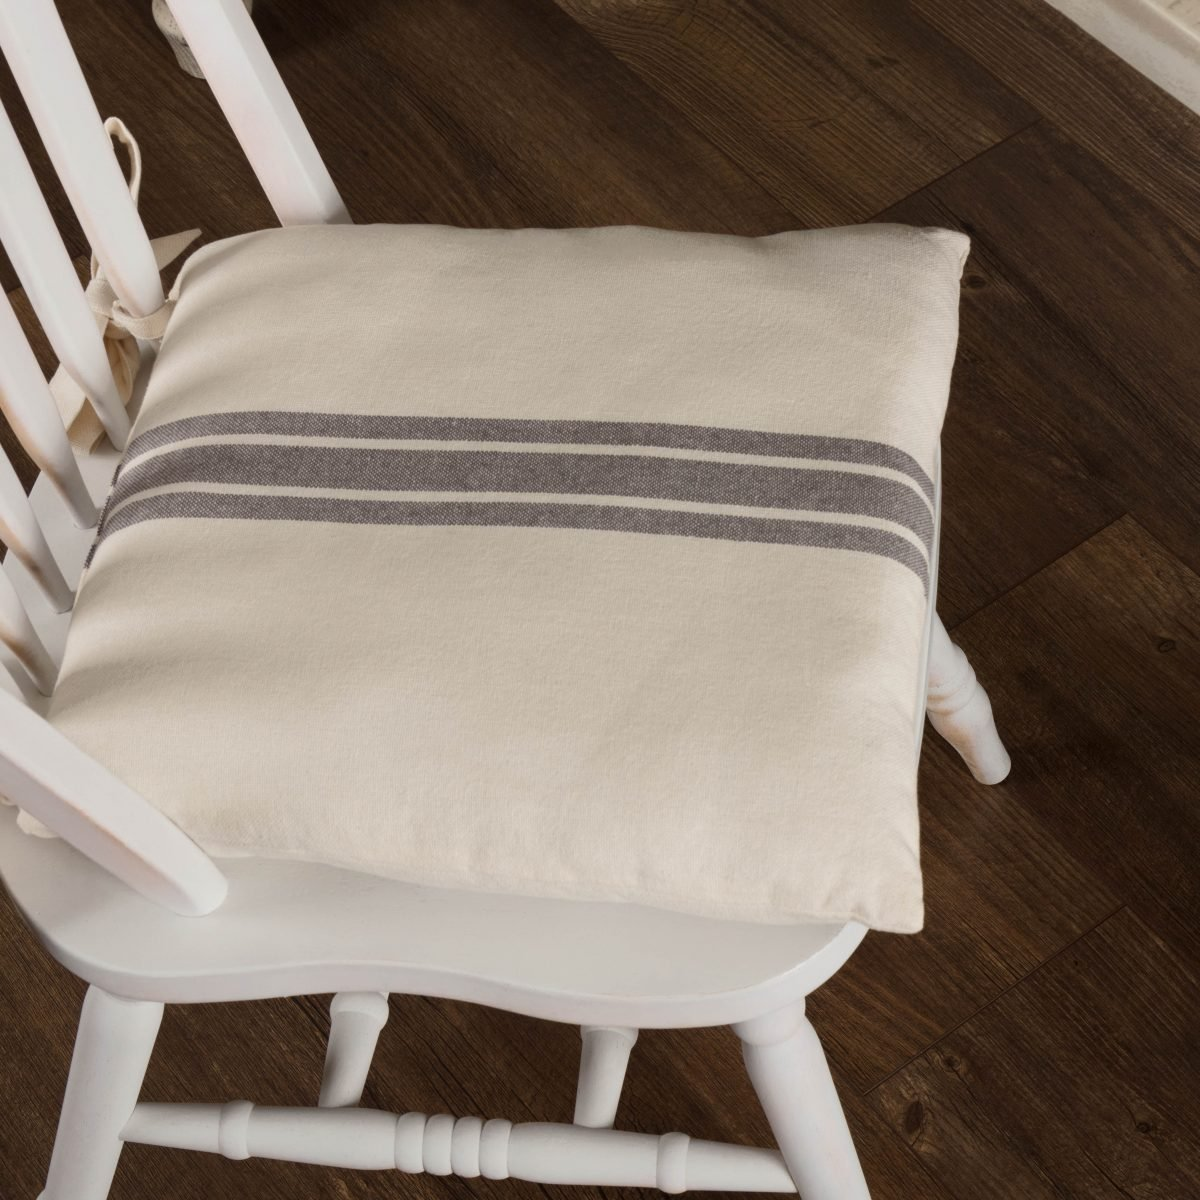 Market Place Gray Grain Sack Chair Pad